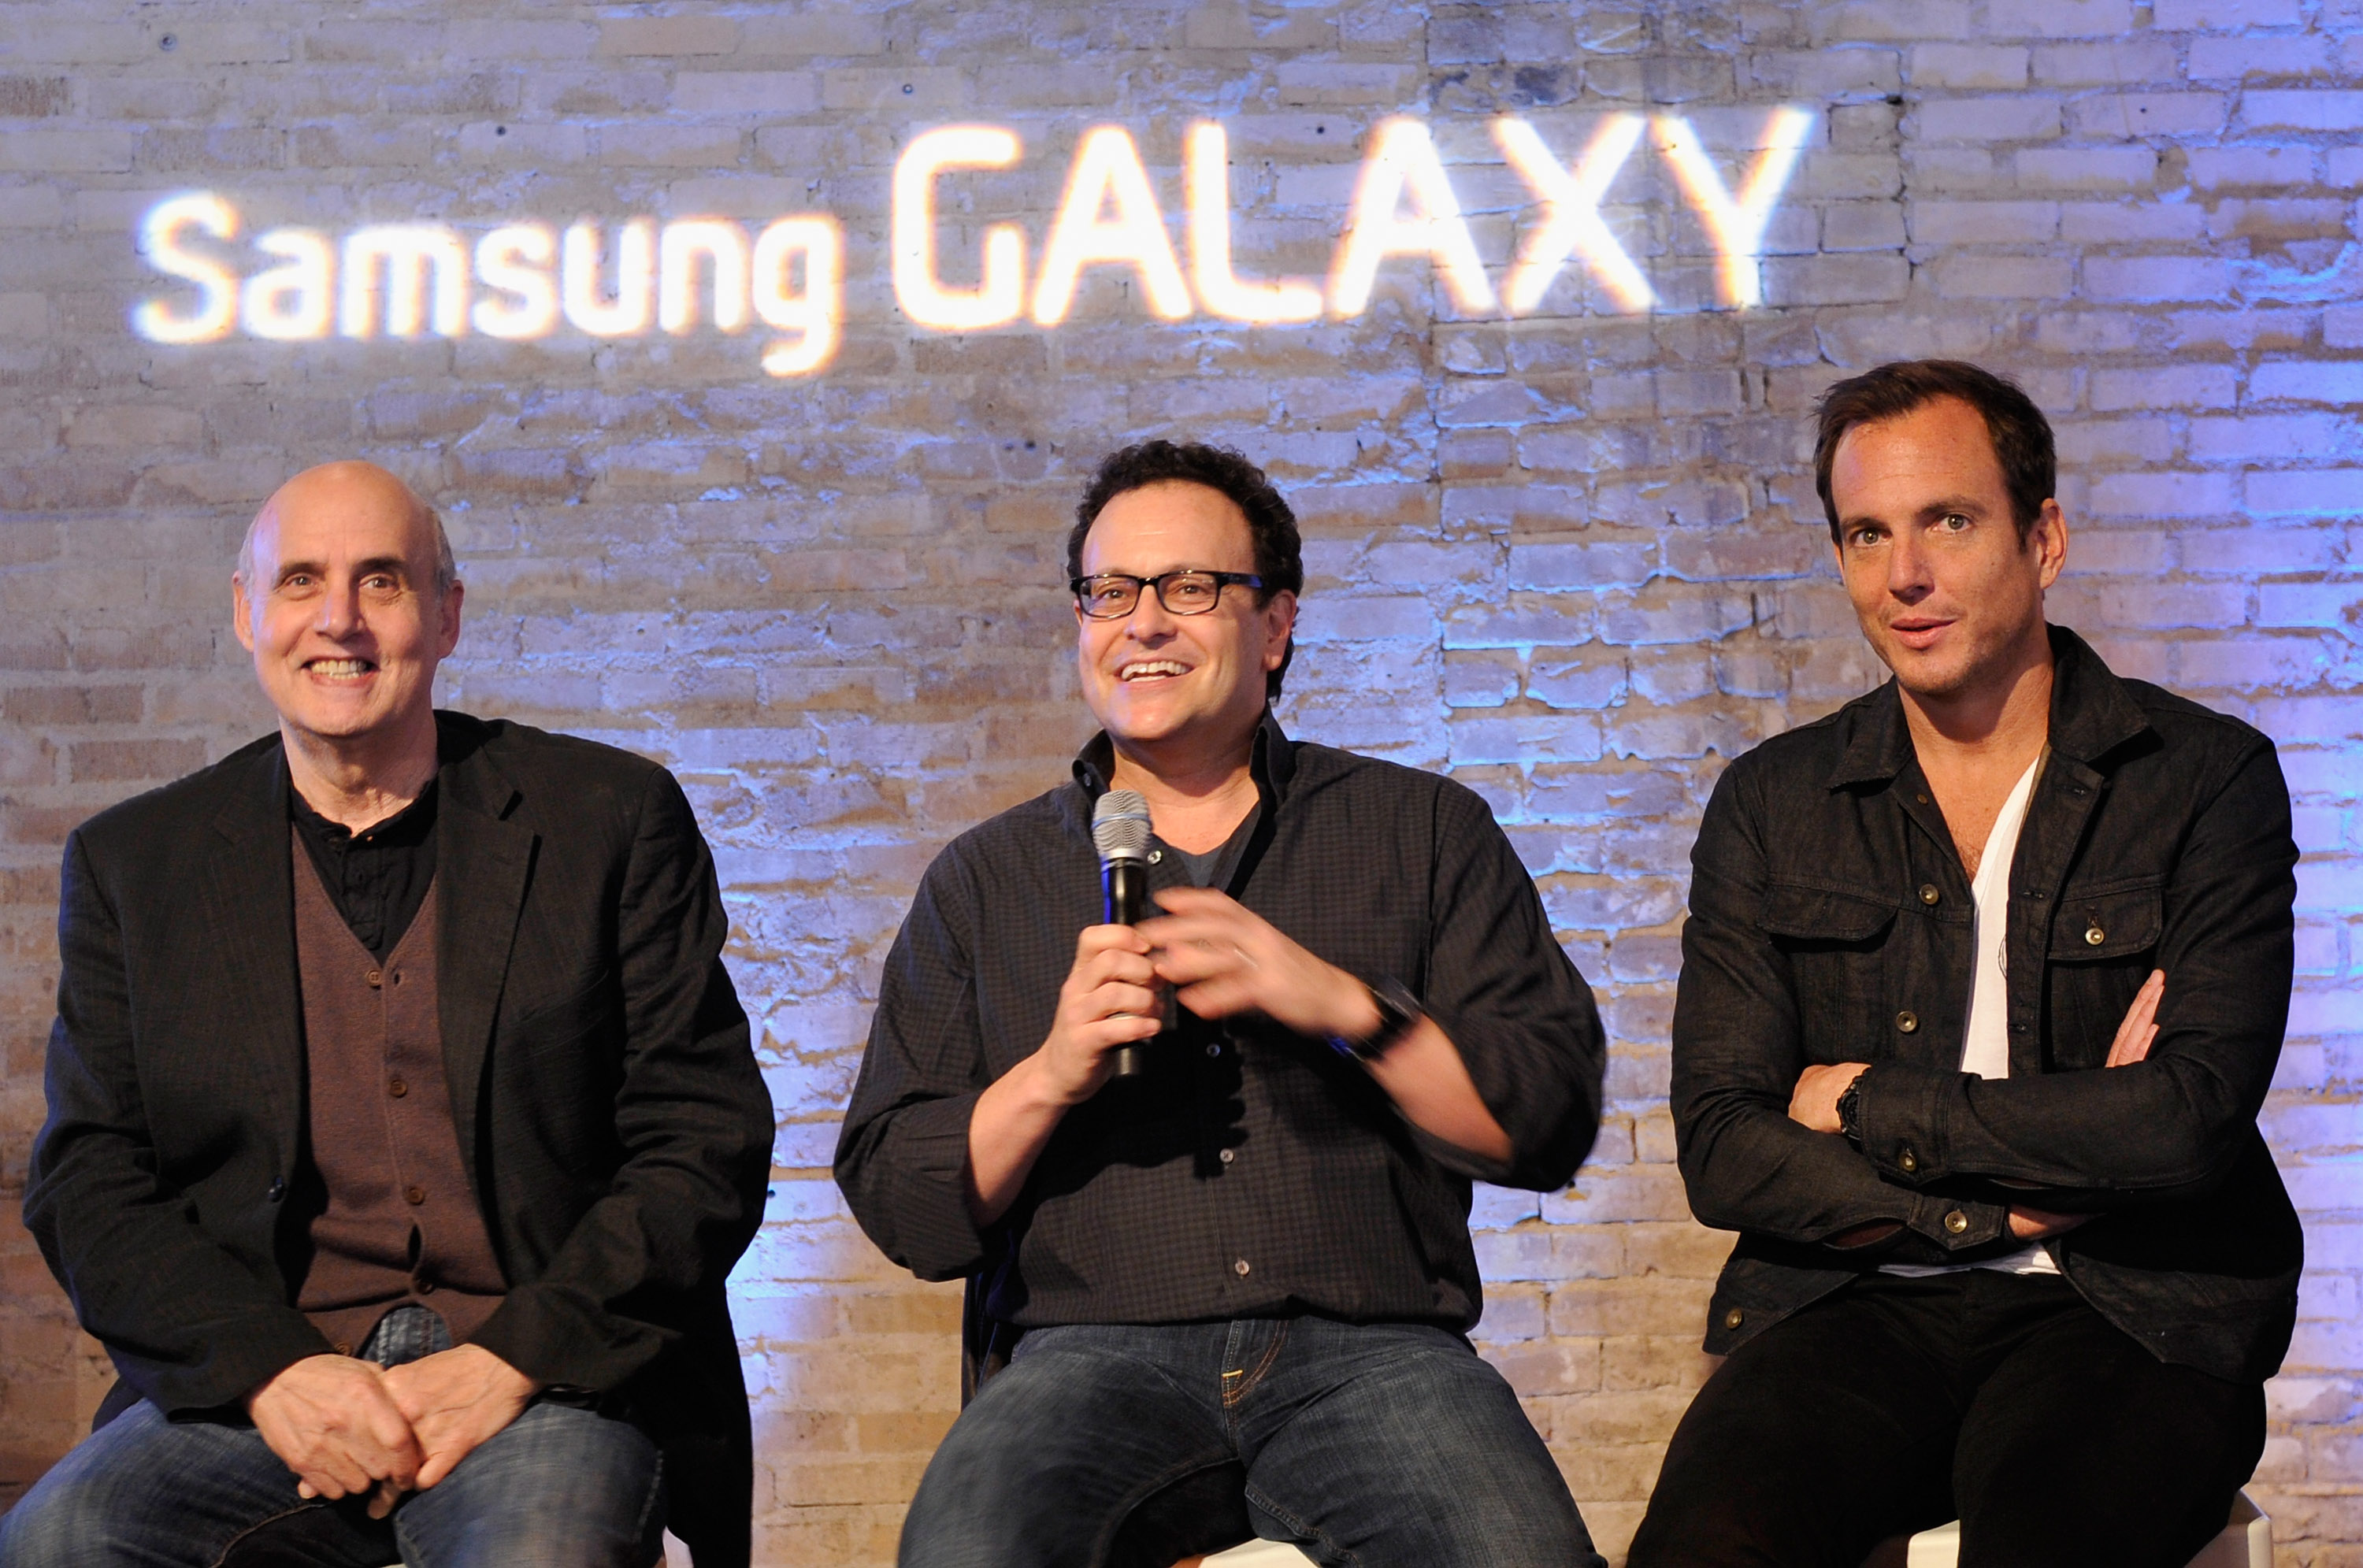 (L-R) Actor Jeffrey Tambor, creator Mitch Hurwitz and actor Will Arnett speak onstage as The Samsung Galaxy Experience hosts a Q&A with Mitch Hurwitz, Will Arnett and Jeffrey Tambor at SXSW on March 10, 2013 in Austin, Texas. (Getty Images)